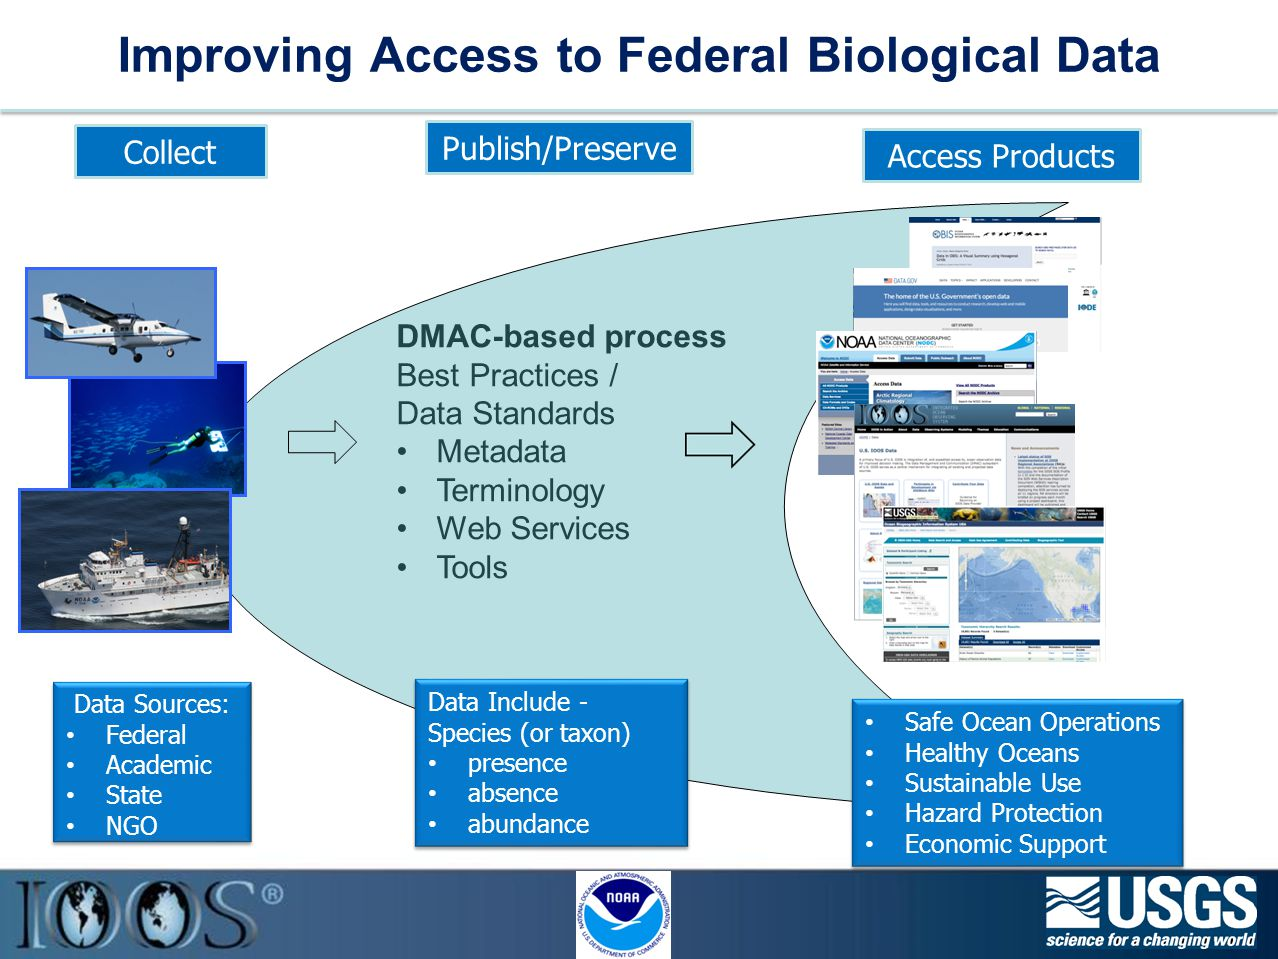 Improving Access to Federal Biological Data 10 Collect Publish/Preserve Access Products DMAC-based process Best Practices / Data Standards Metadata Terminology Web Services Tools Data Sources: Federal Academic State NGO Data Sources: Federal Academic State NGO Data Include - Species (or taxon) presence absence abundance Data Include - Species (or taxon) presence absence abundance Safe Ocean Operations Healthy Oceans Sustainable Use Hazard Protection Economic Support Safe Ocean Operations Healthy Oceans Sustainable Use Hazard Protection Economic Support